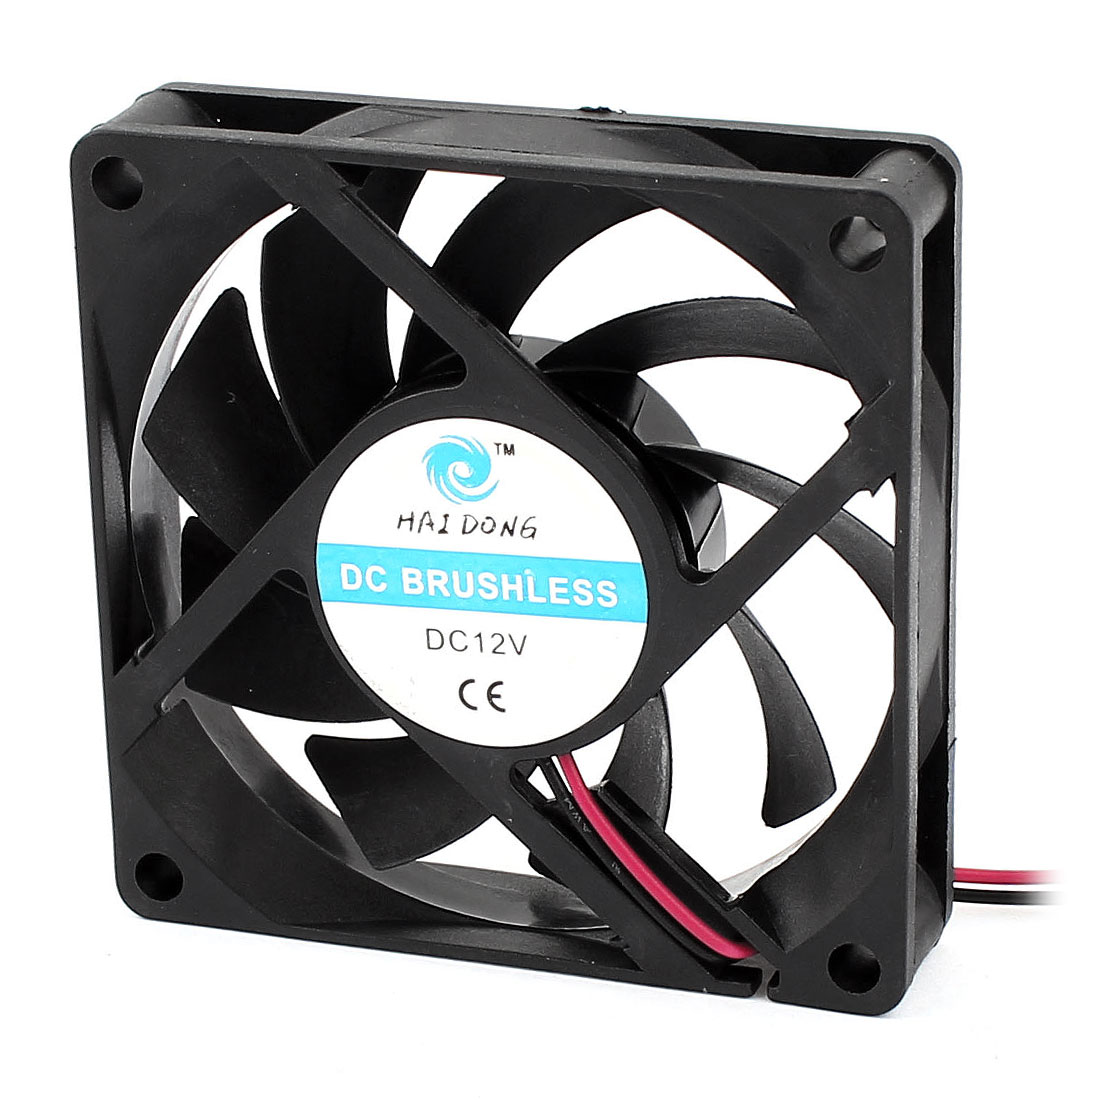 DC 12V 70mmx15mm 2 Terminals Plastic Case Cooling Cooler Fan w Metal Grill